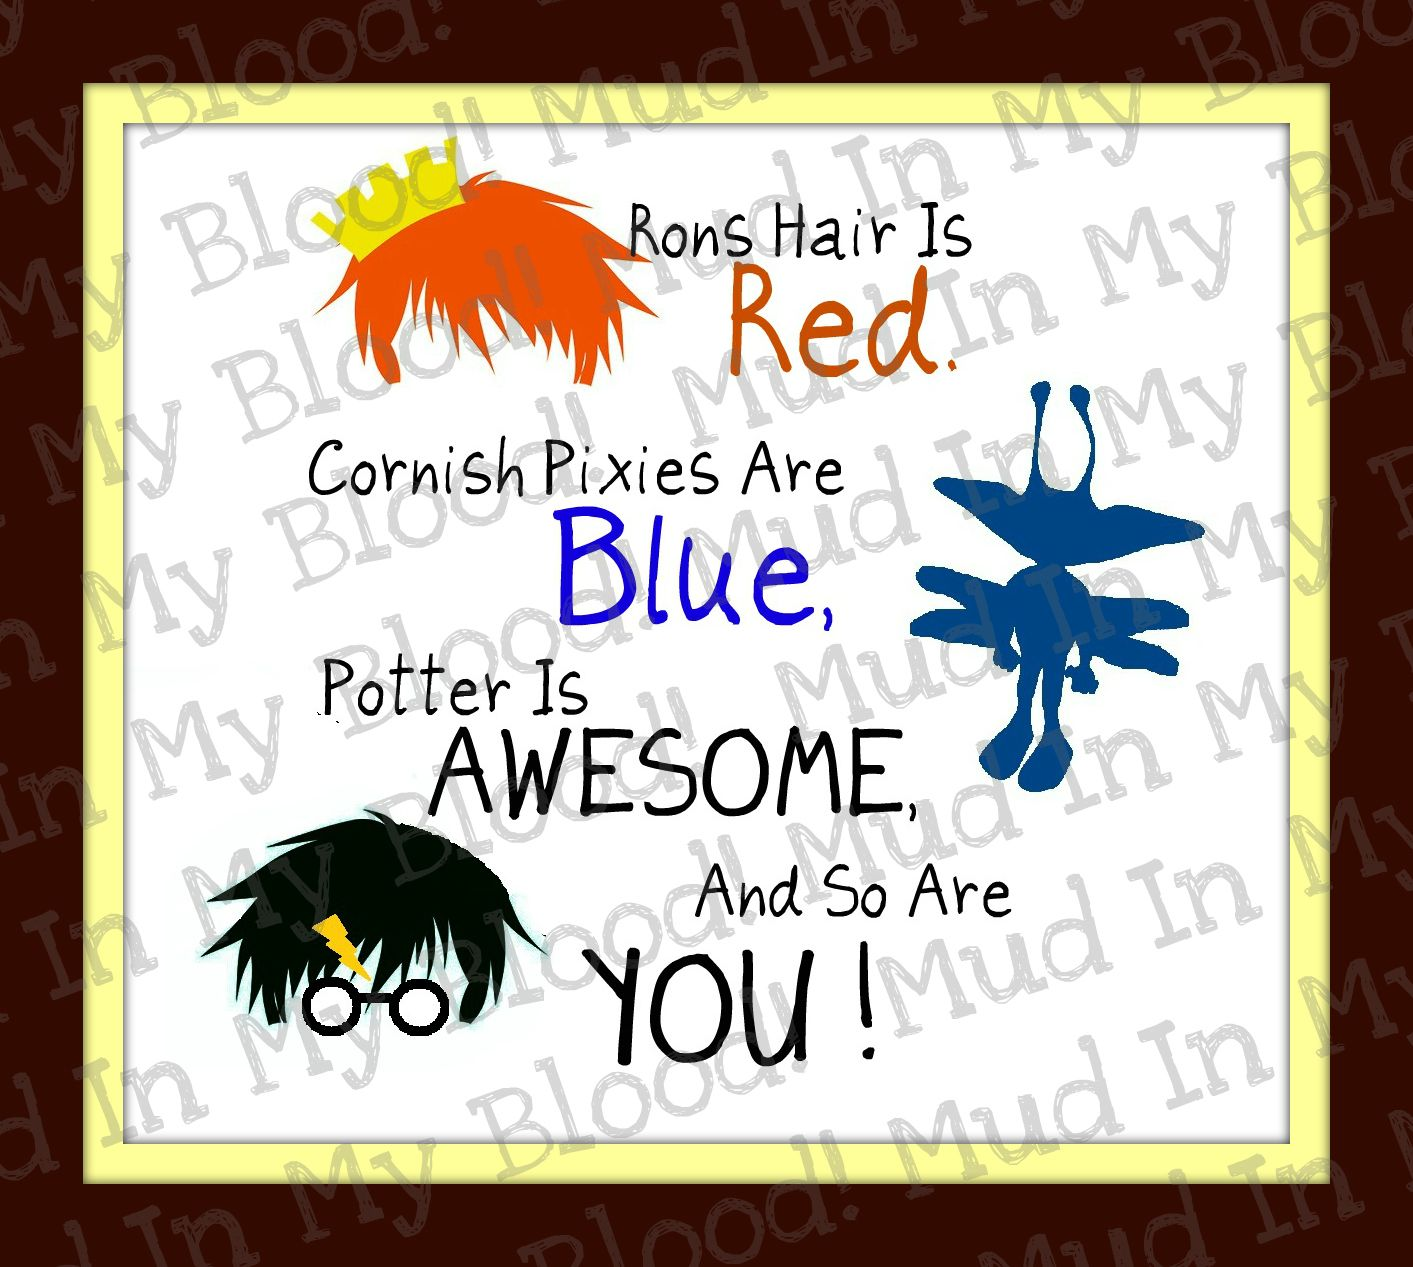 Harry Potter Valentine Buttons Coming Soon To Mudinmybloodetsy - Hilarious harry potter valentines cards perfect special wizard life